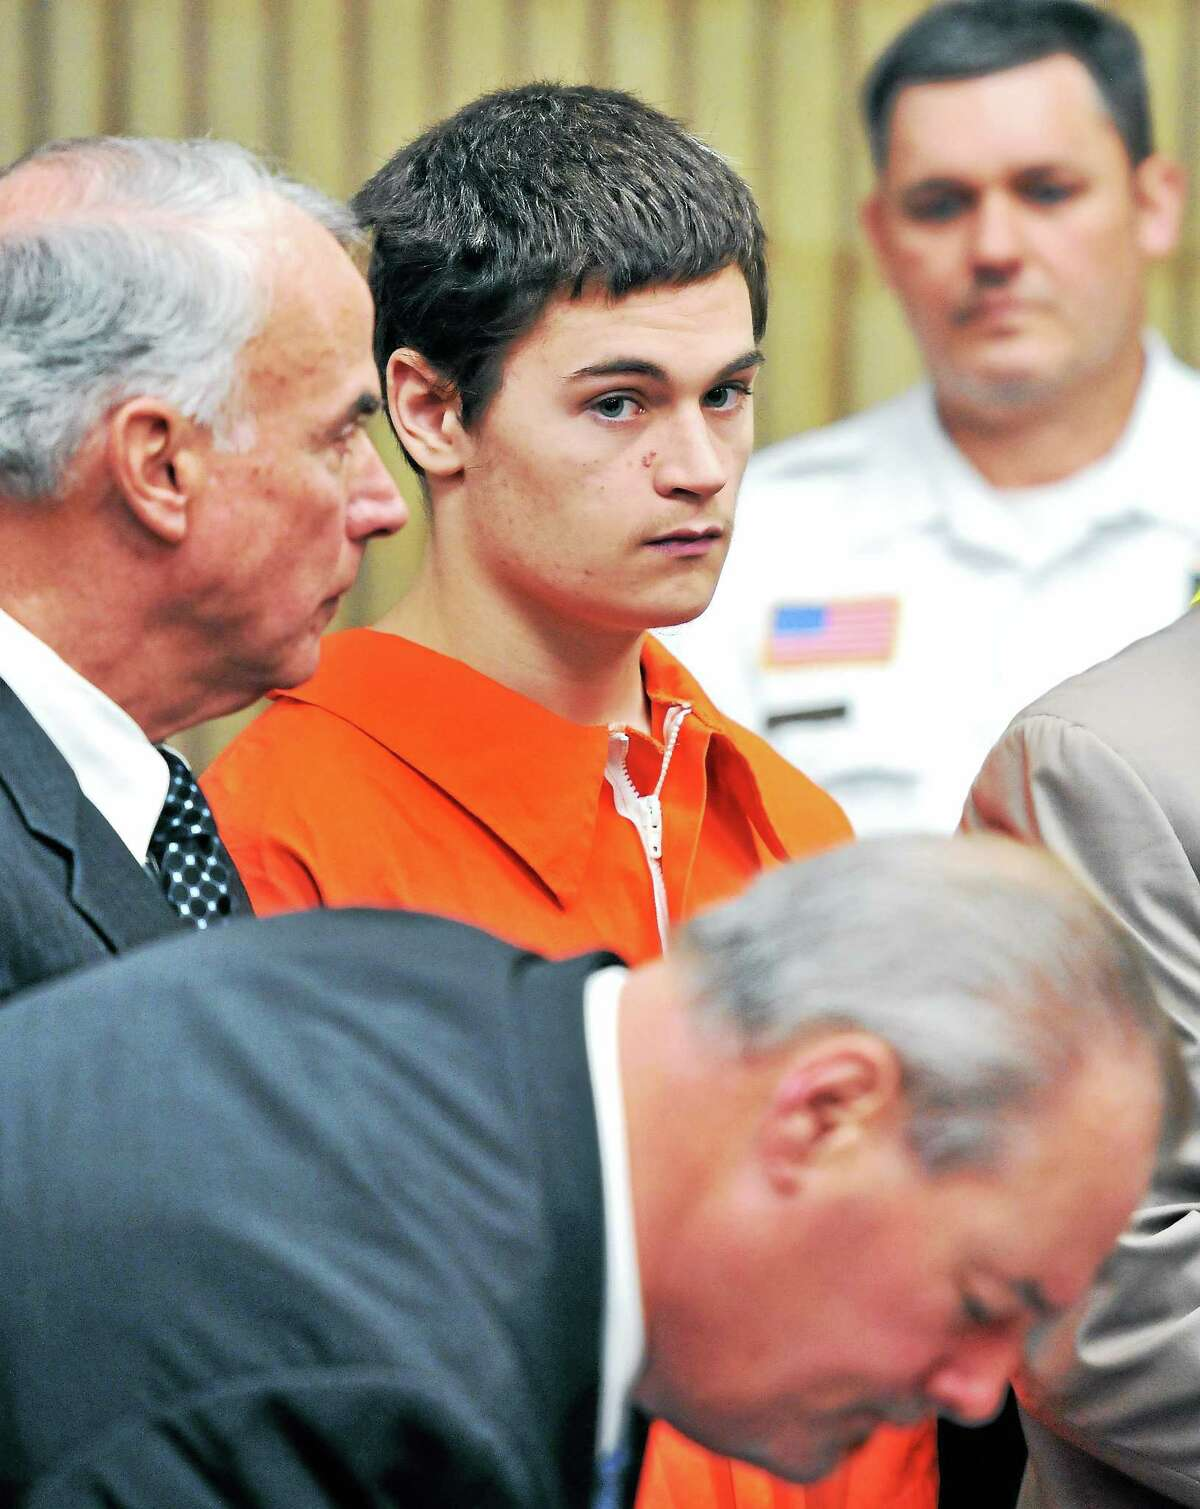 Christopher Plaskon, center, 17, appears Wednesday for a probable cause hearing at Superior Court in Milford in the stabbing death of Maren Sanchez. At left is his uncle and guardian Paul Healy; at bottom is attorney Edward Gavin.